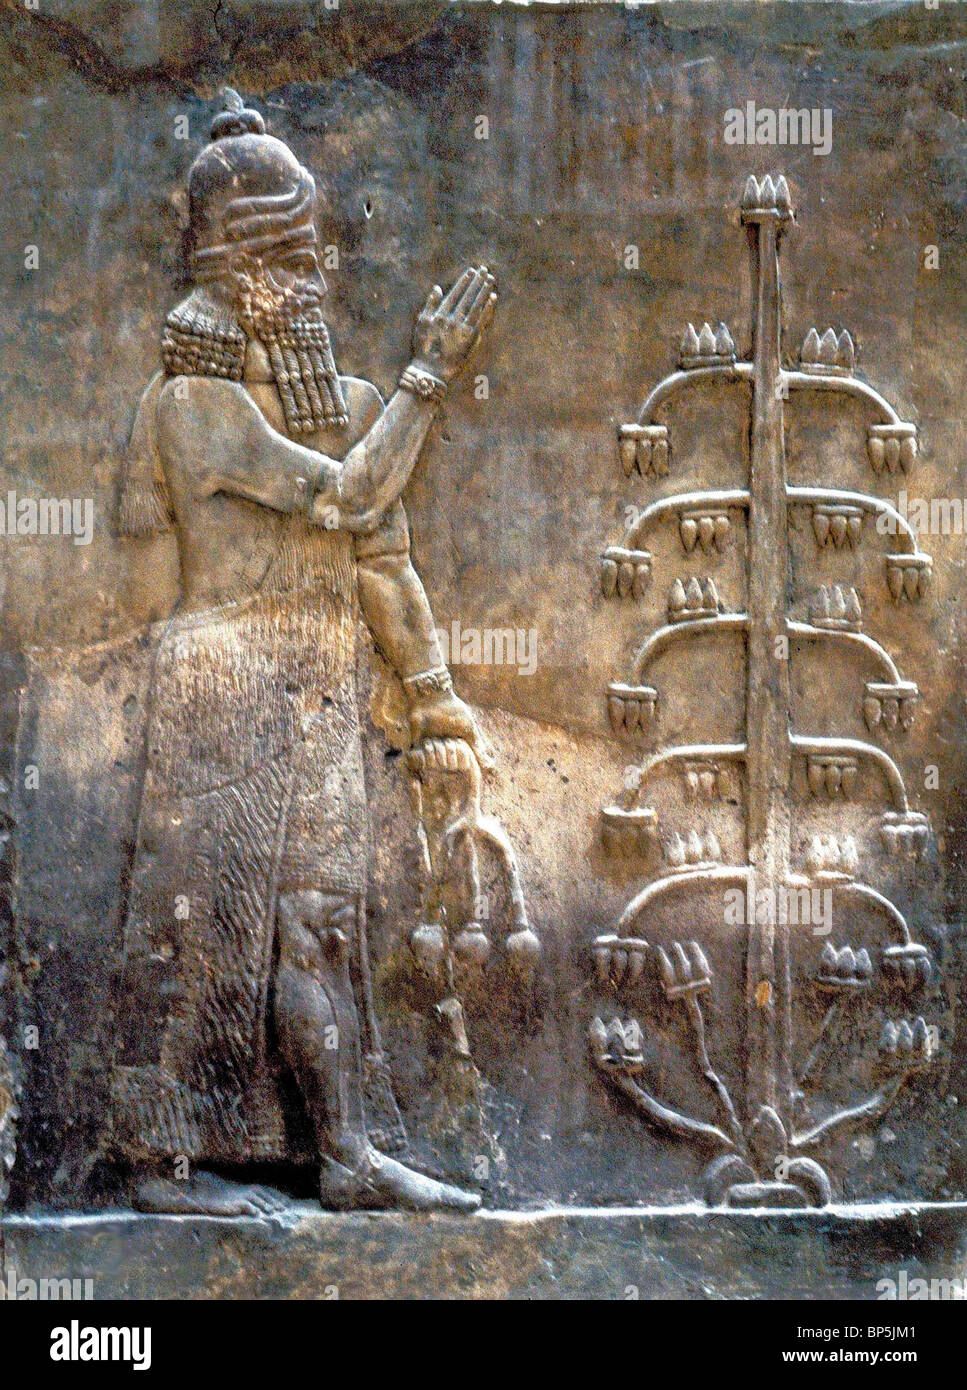 4053. PROTECTIVE SPIRIT AND THE TREE OF LIFE, WALL RELIEF FROM BABYLON, C. 7TH. C. BC Stock Photo